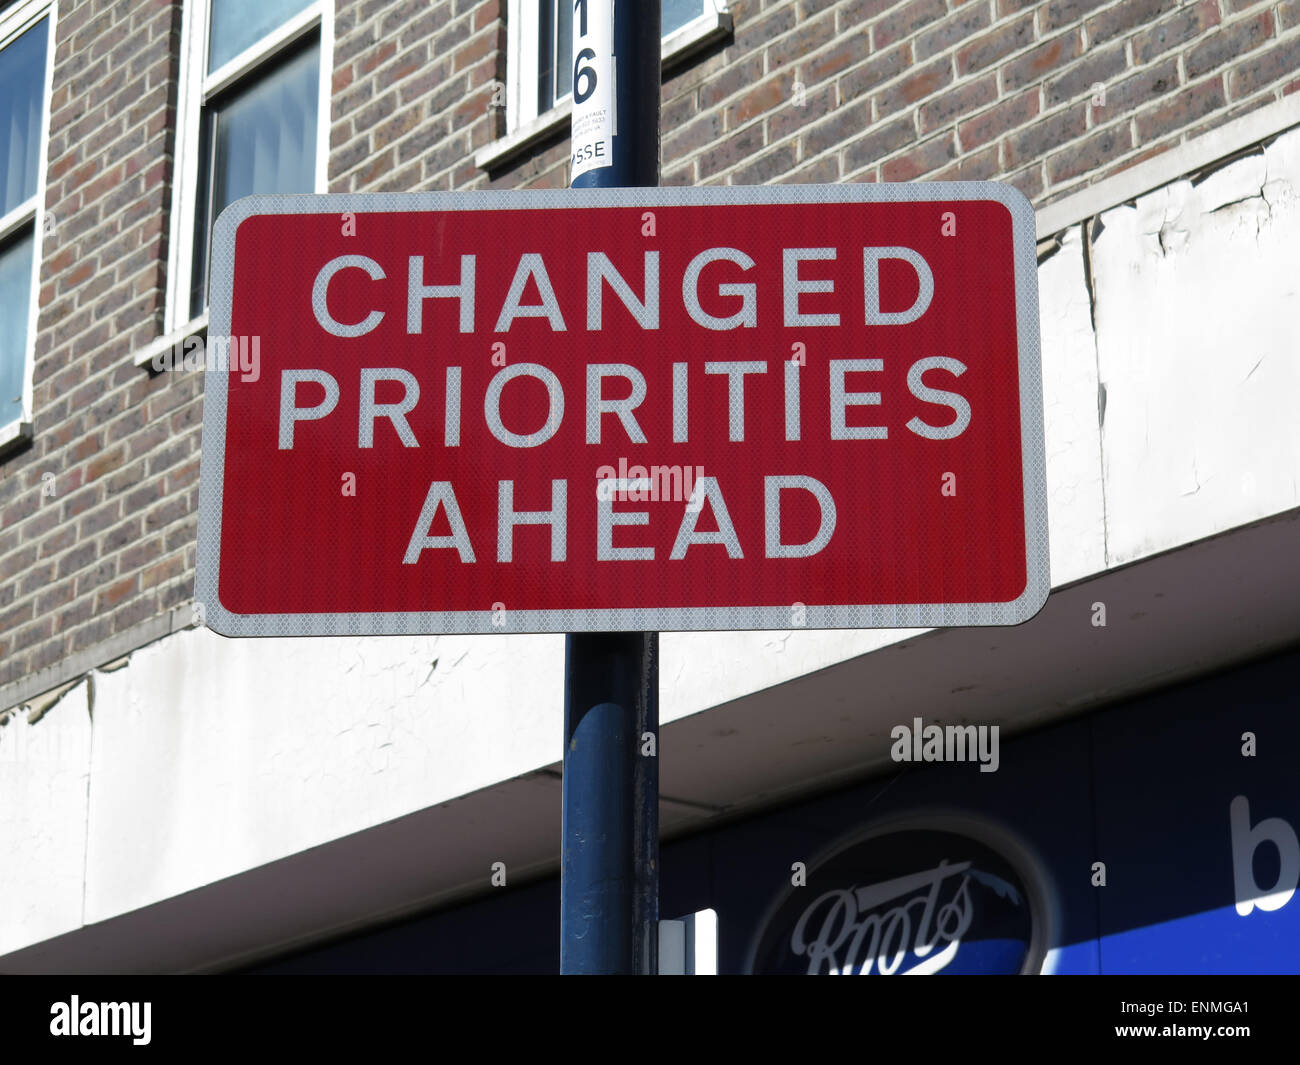 changed priorities ahead sign - Stock Image